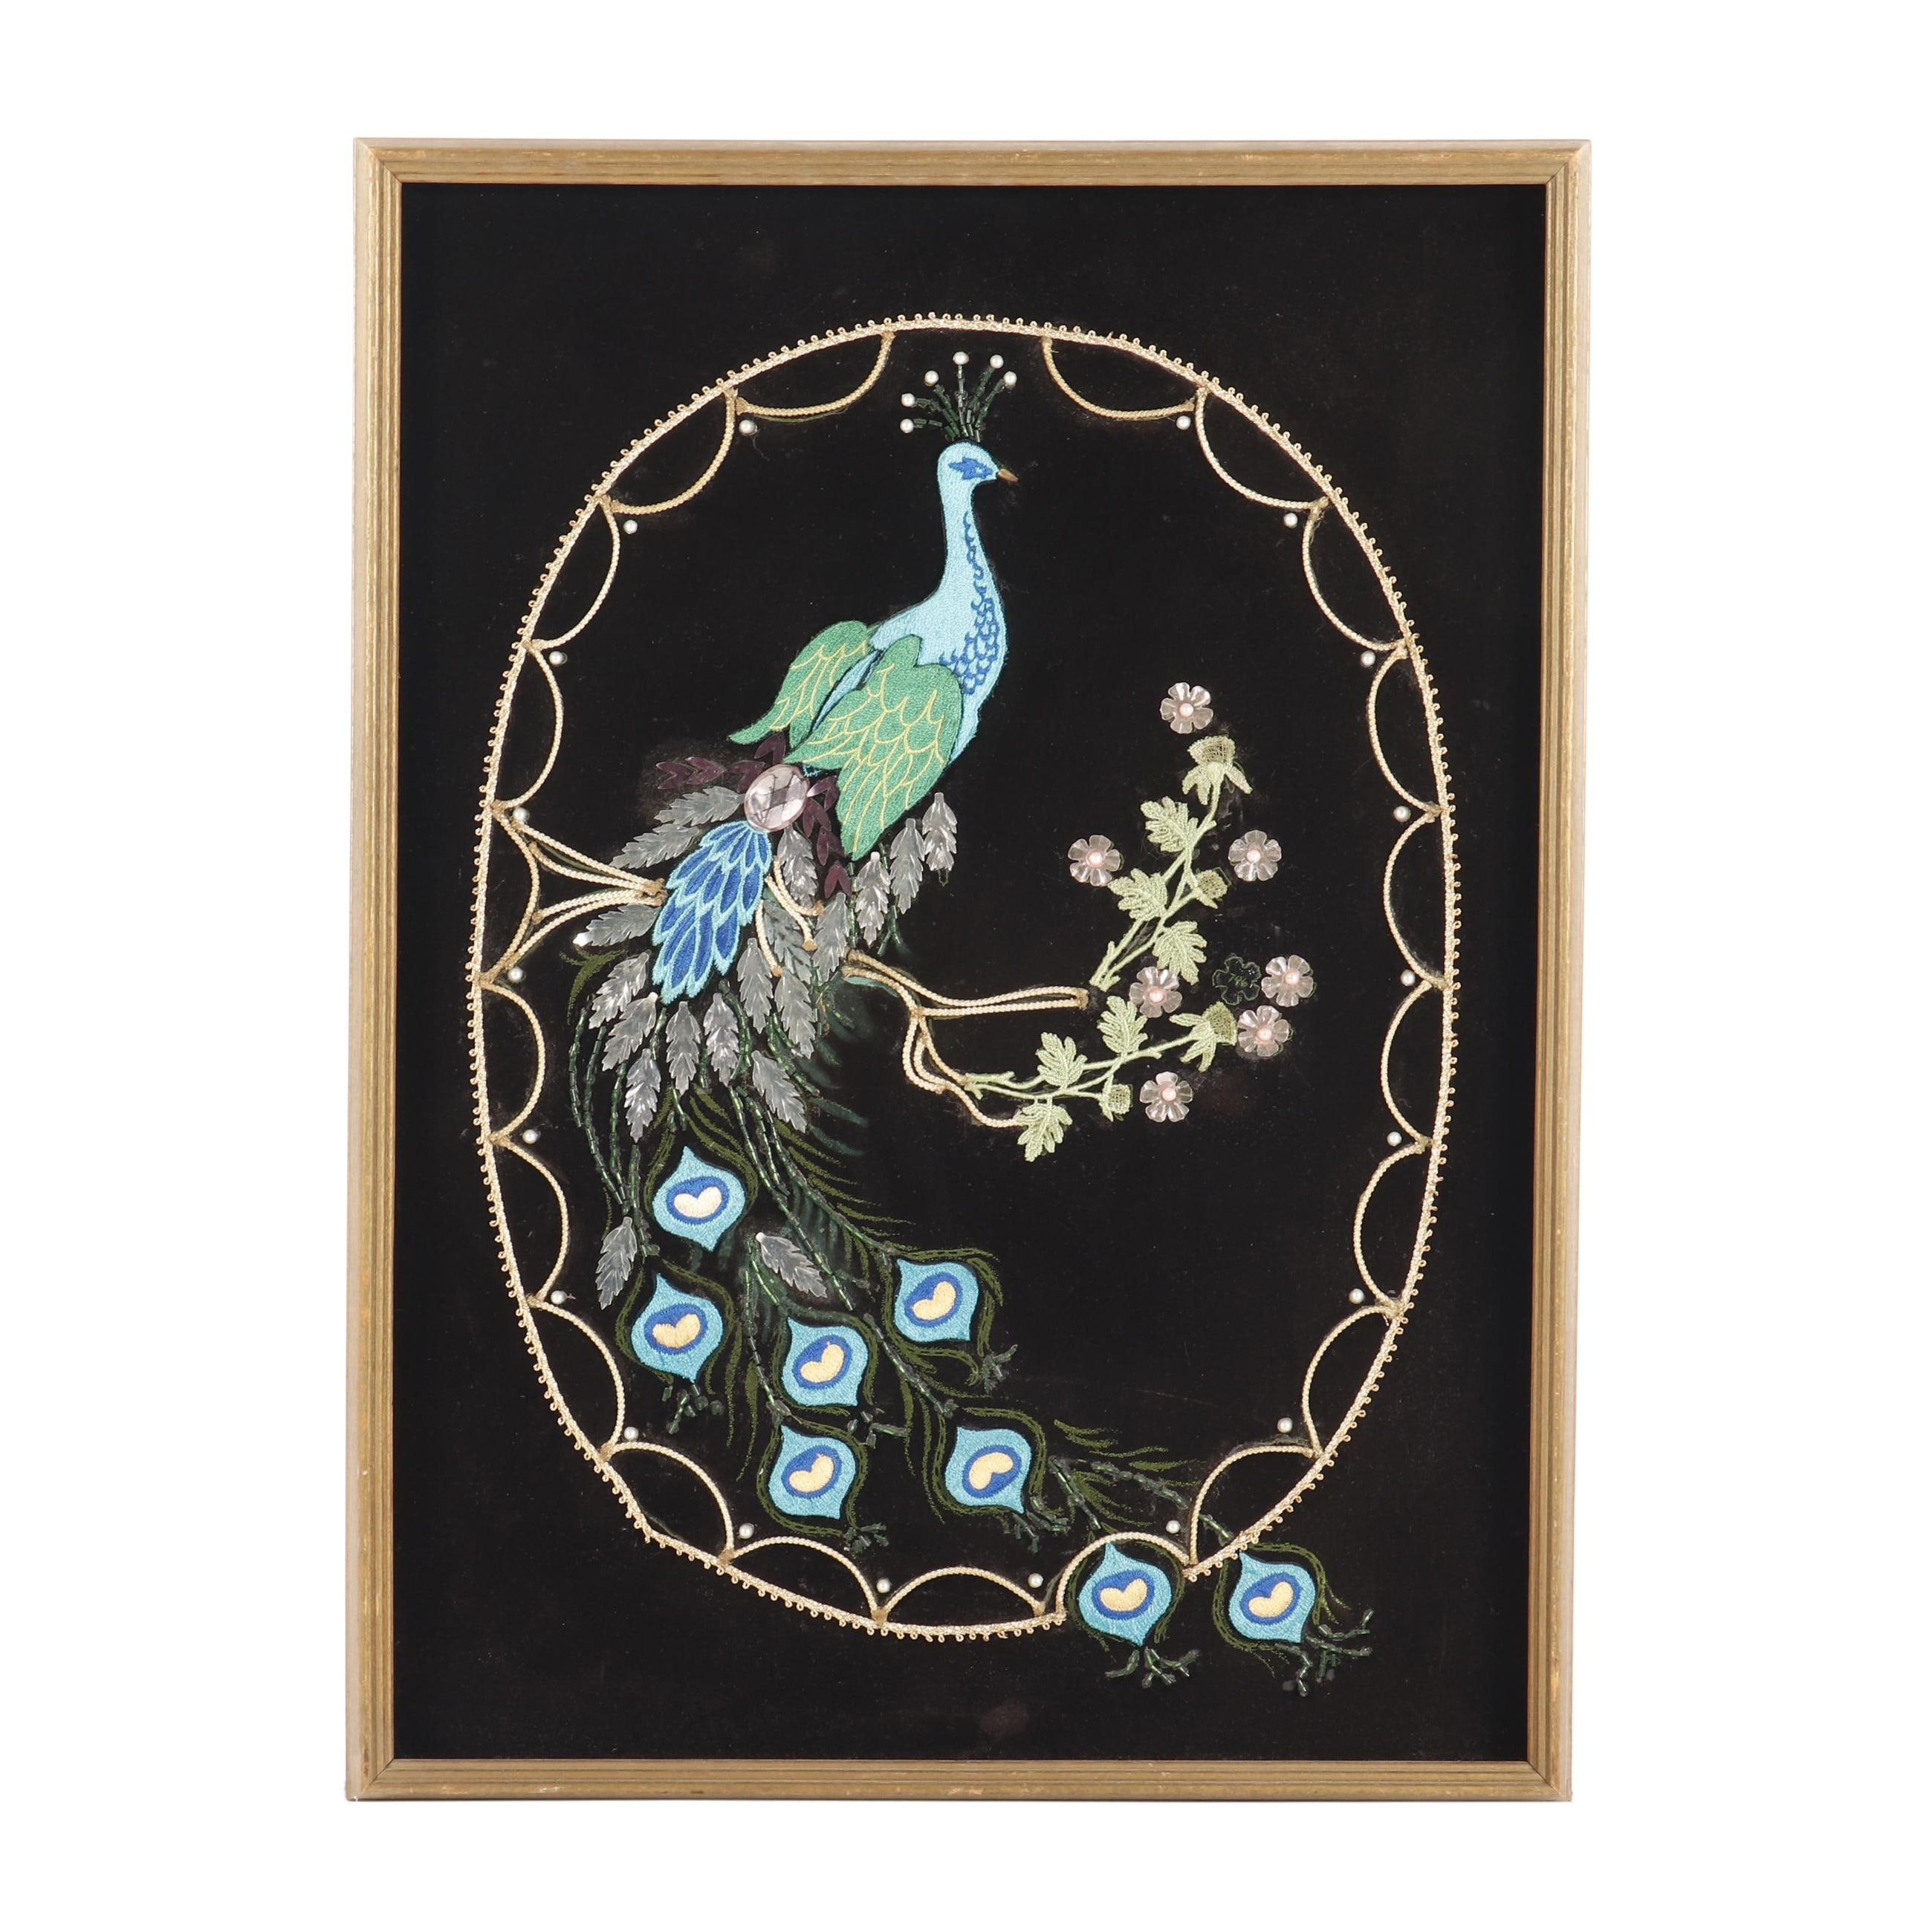 Embroidered Velvet Wall Hanging of a Peacock